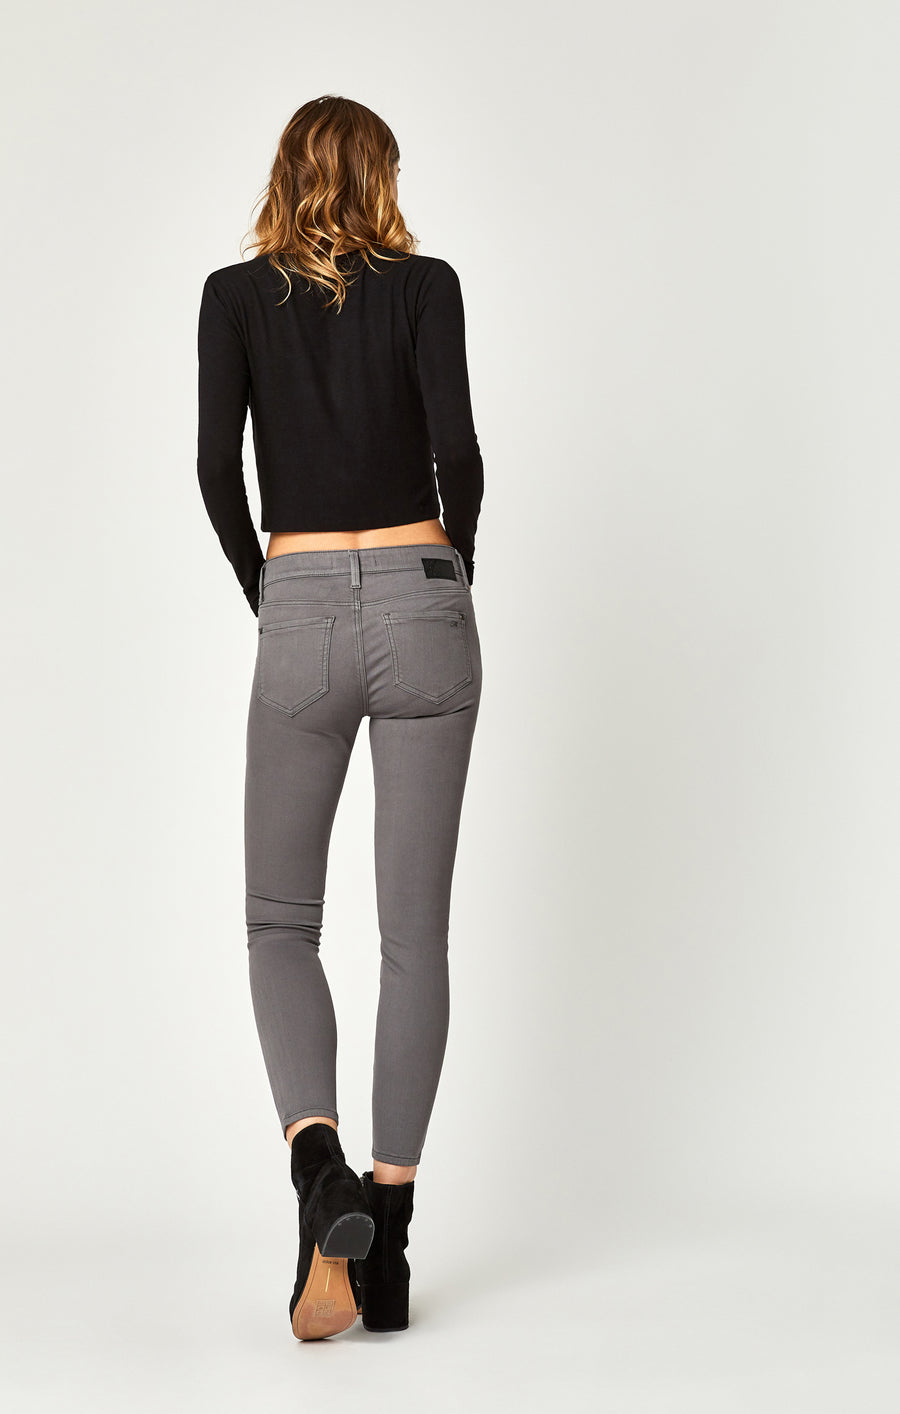 KARLINA SKINNY CARGO PANTS IN GRANITE GREY TWILL - Mavi Jeans